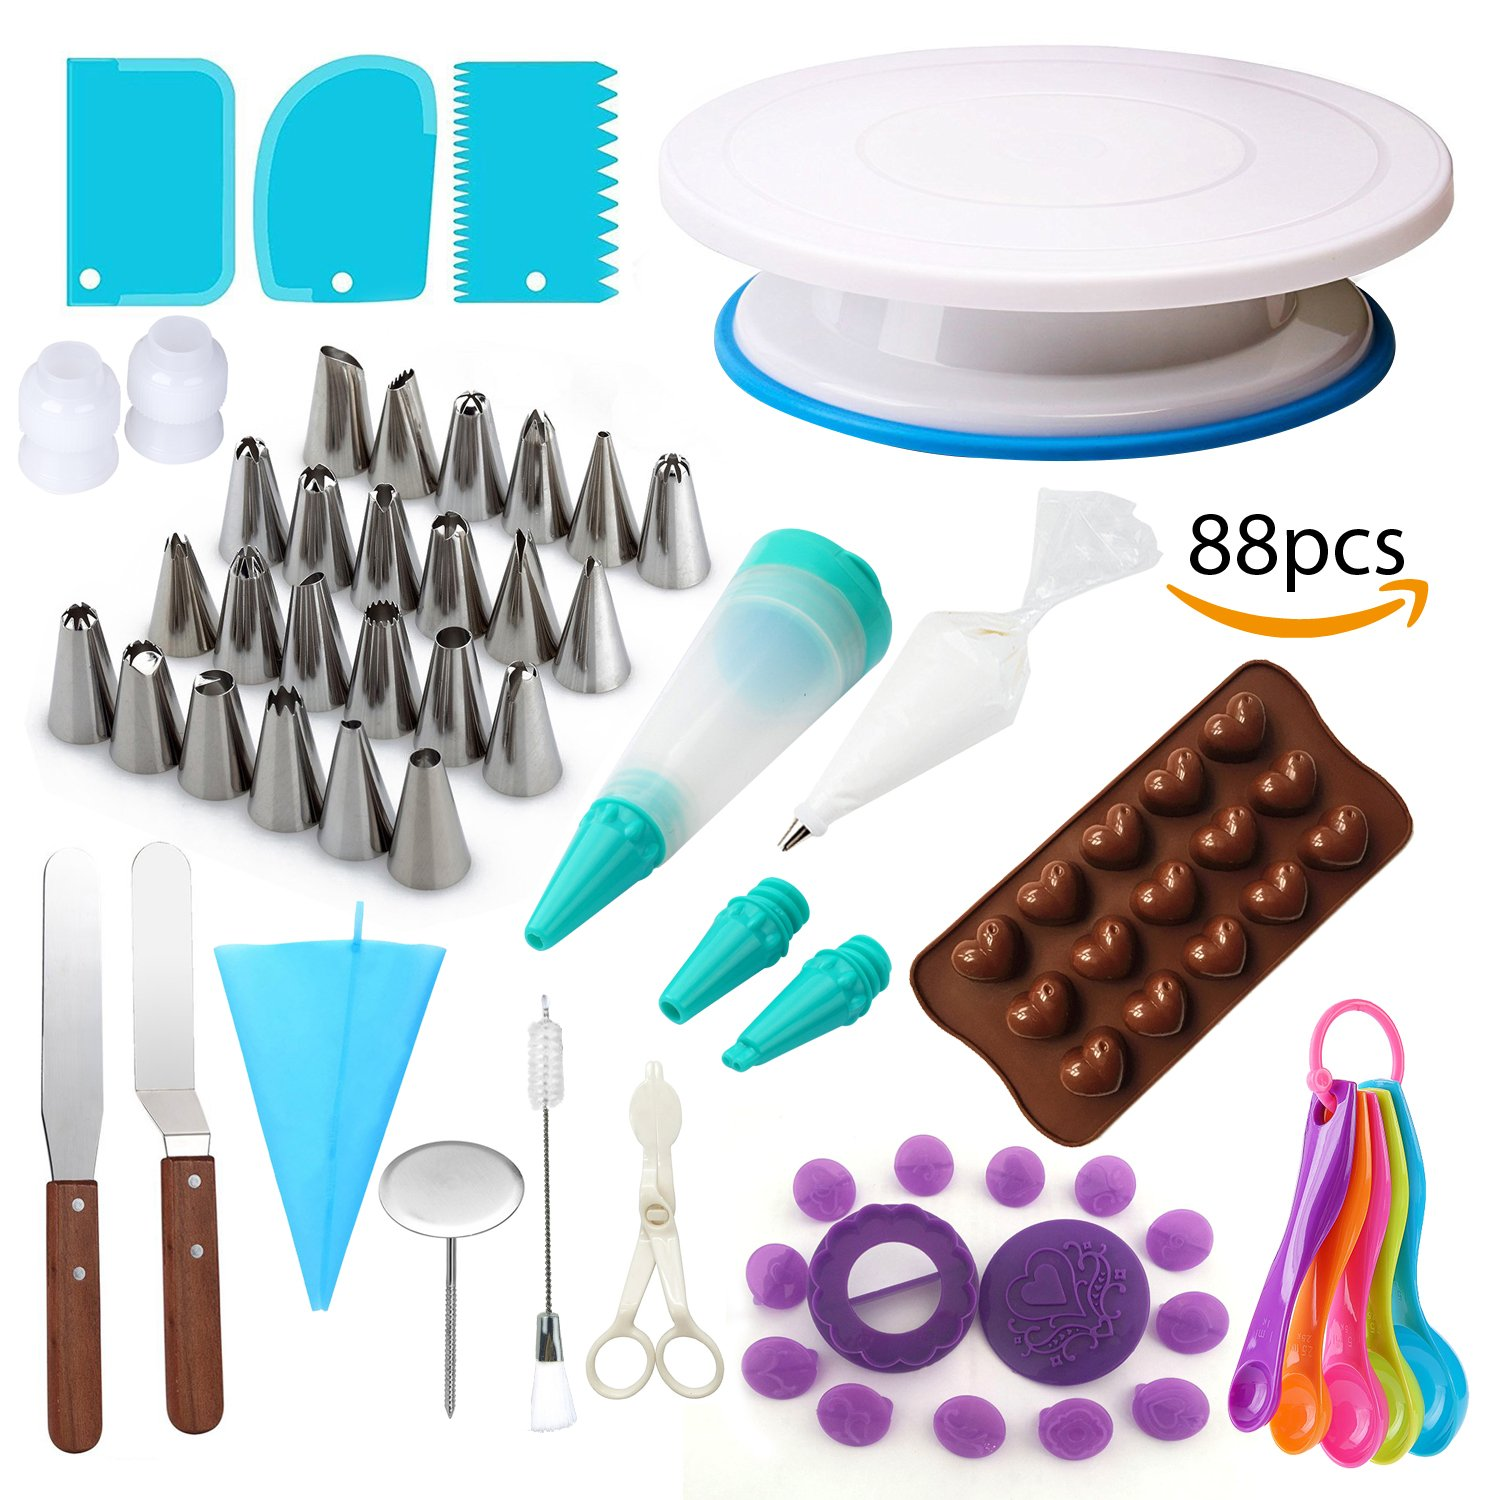 Cake Decorating Supplies Kit with Rotating Turntable Stand, Imprint & Tip Set, Frosting & Piping Bags, Pastry Tools for Cupcakes, Fondant Icing, Spatulas 88 Pieces by Lime & Lemons Co.